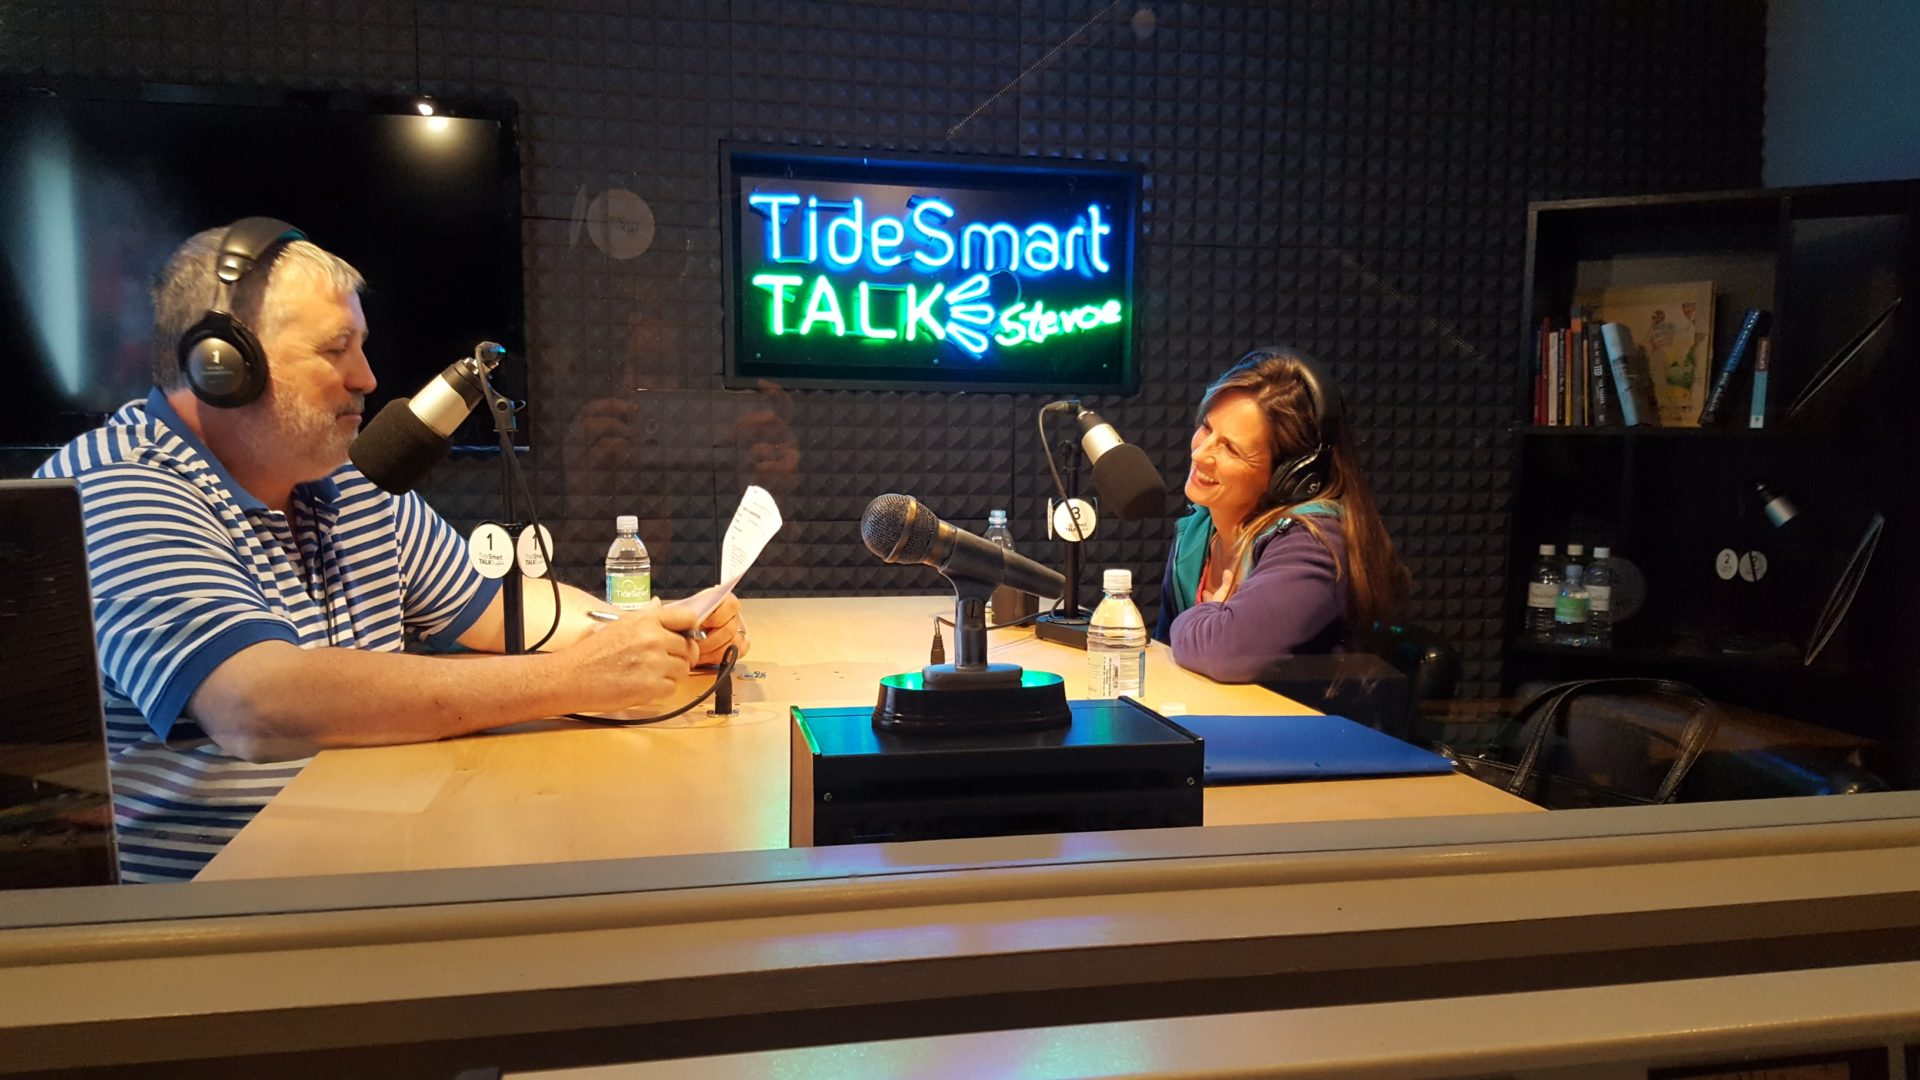 Host of TideSmart Talk with Stevoe, Steve Woods, welcomed Co-Founder of H.O.P.E. Counseling, Beth Andrews (at right).